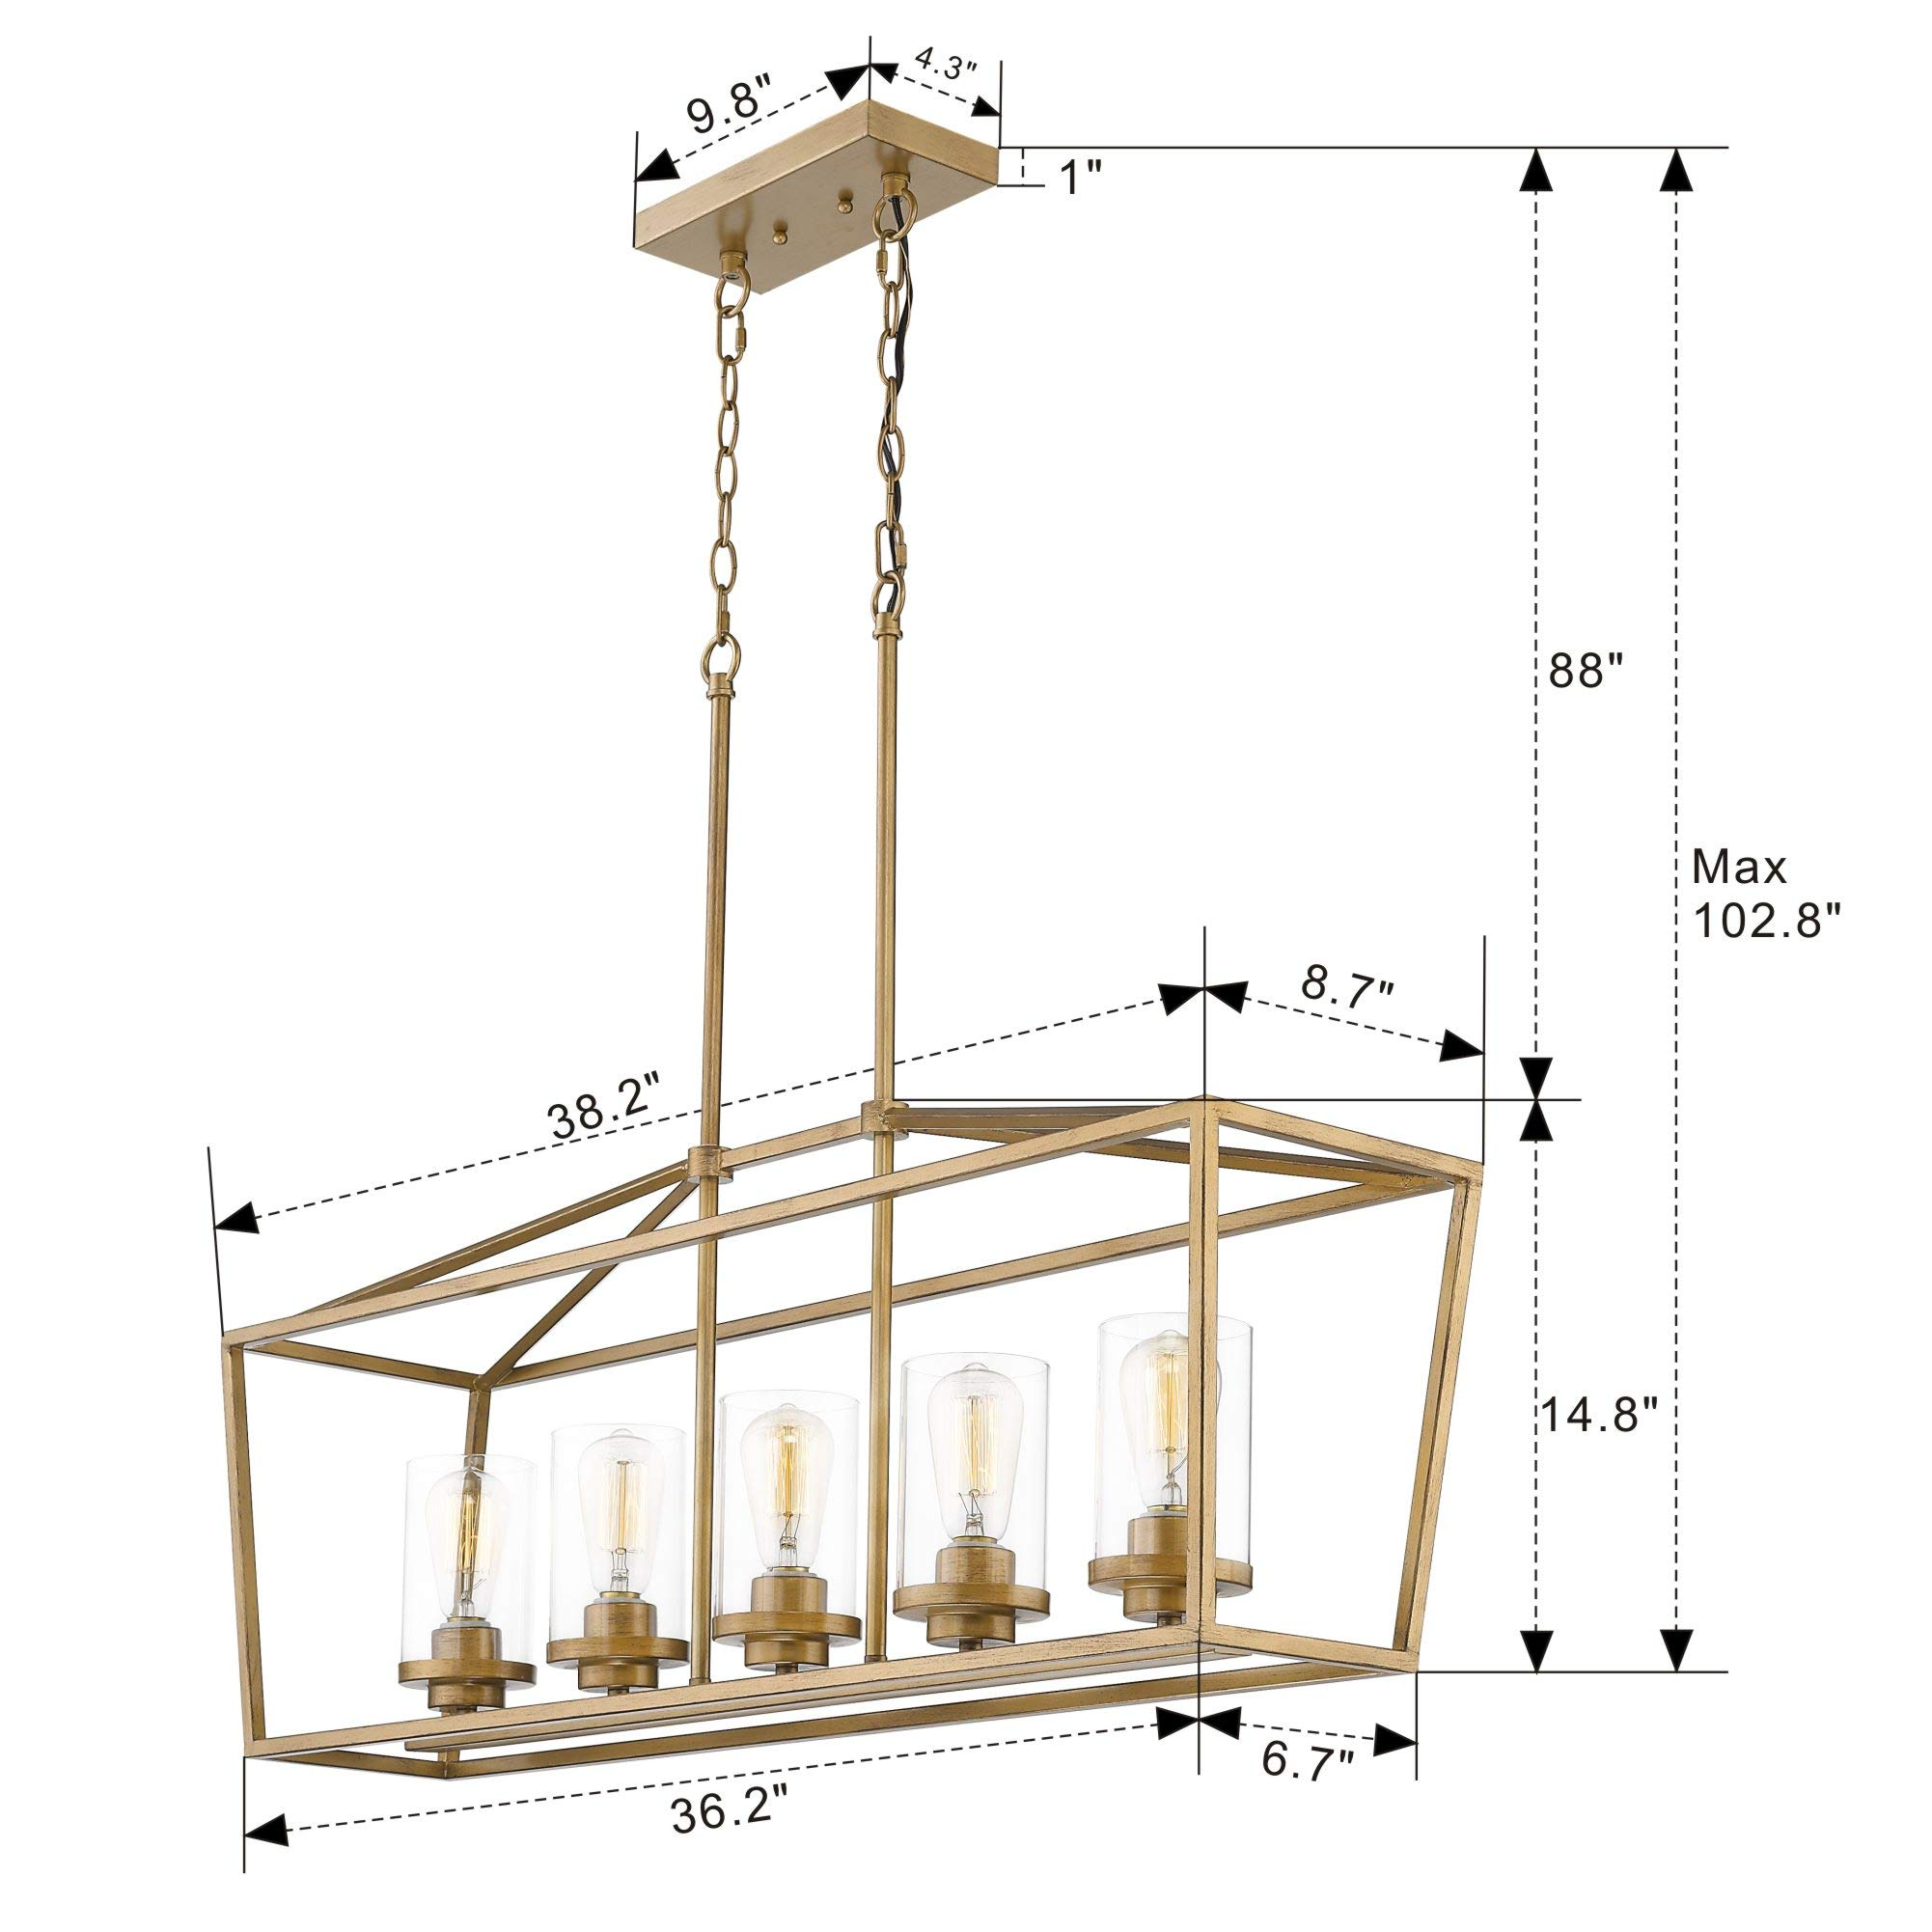 Emliviar 5-Light Pendant Lighting for Kitchen Island, Dining Room Lighting Fixture, Antique Brass Finish with Clear Glass Shade, P3033A-5LP by EMLIVIAR (Image #7)